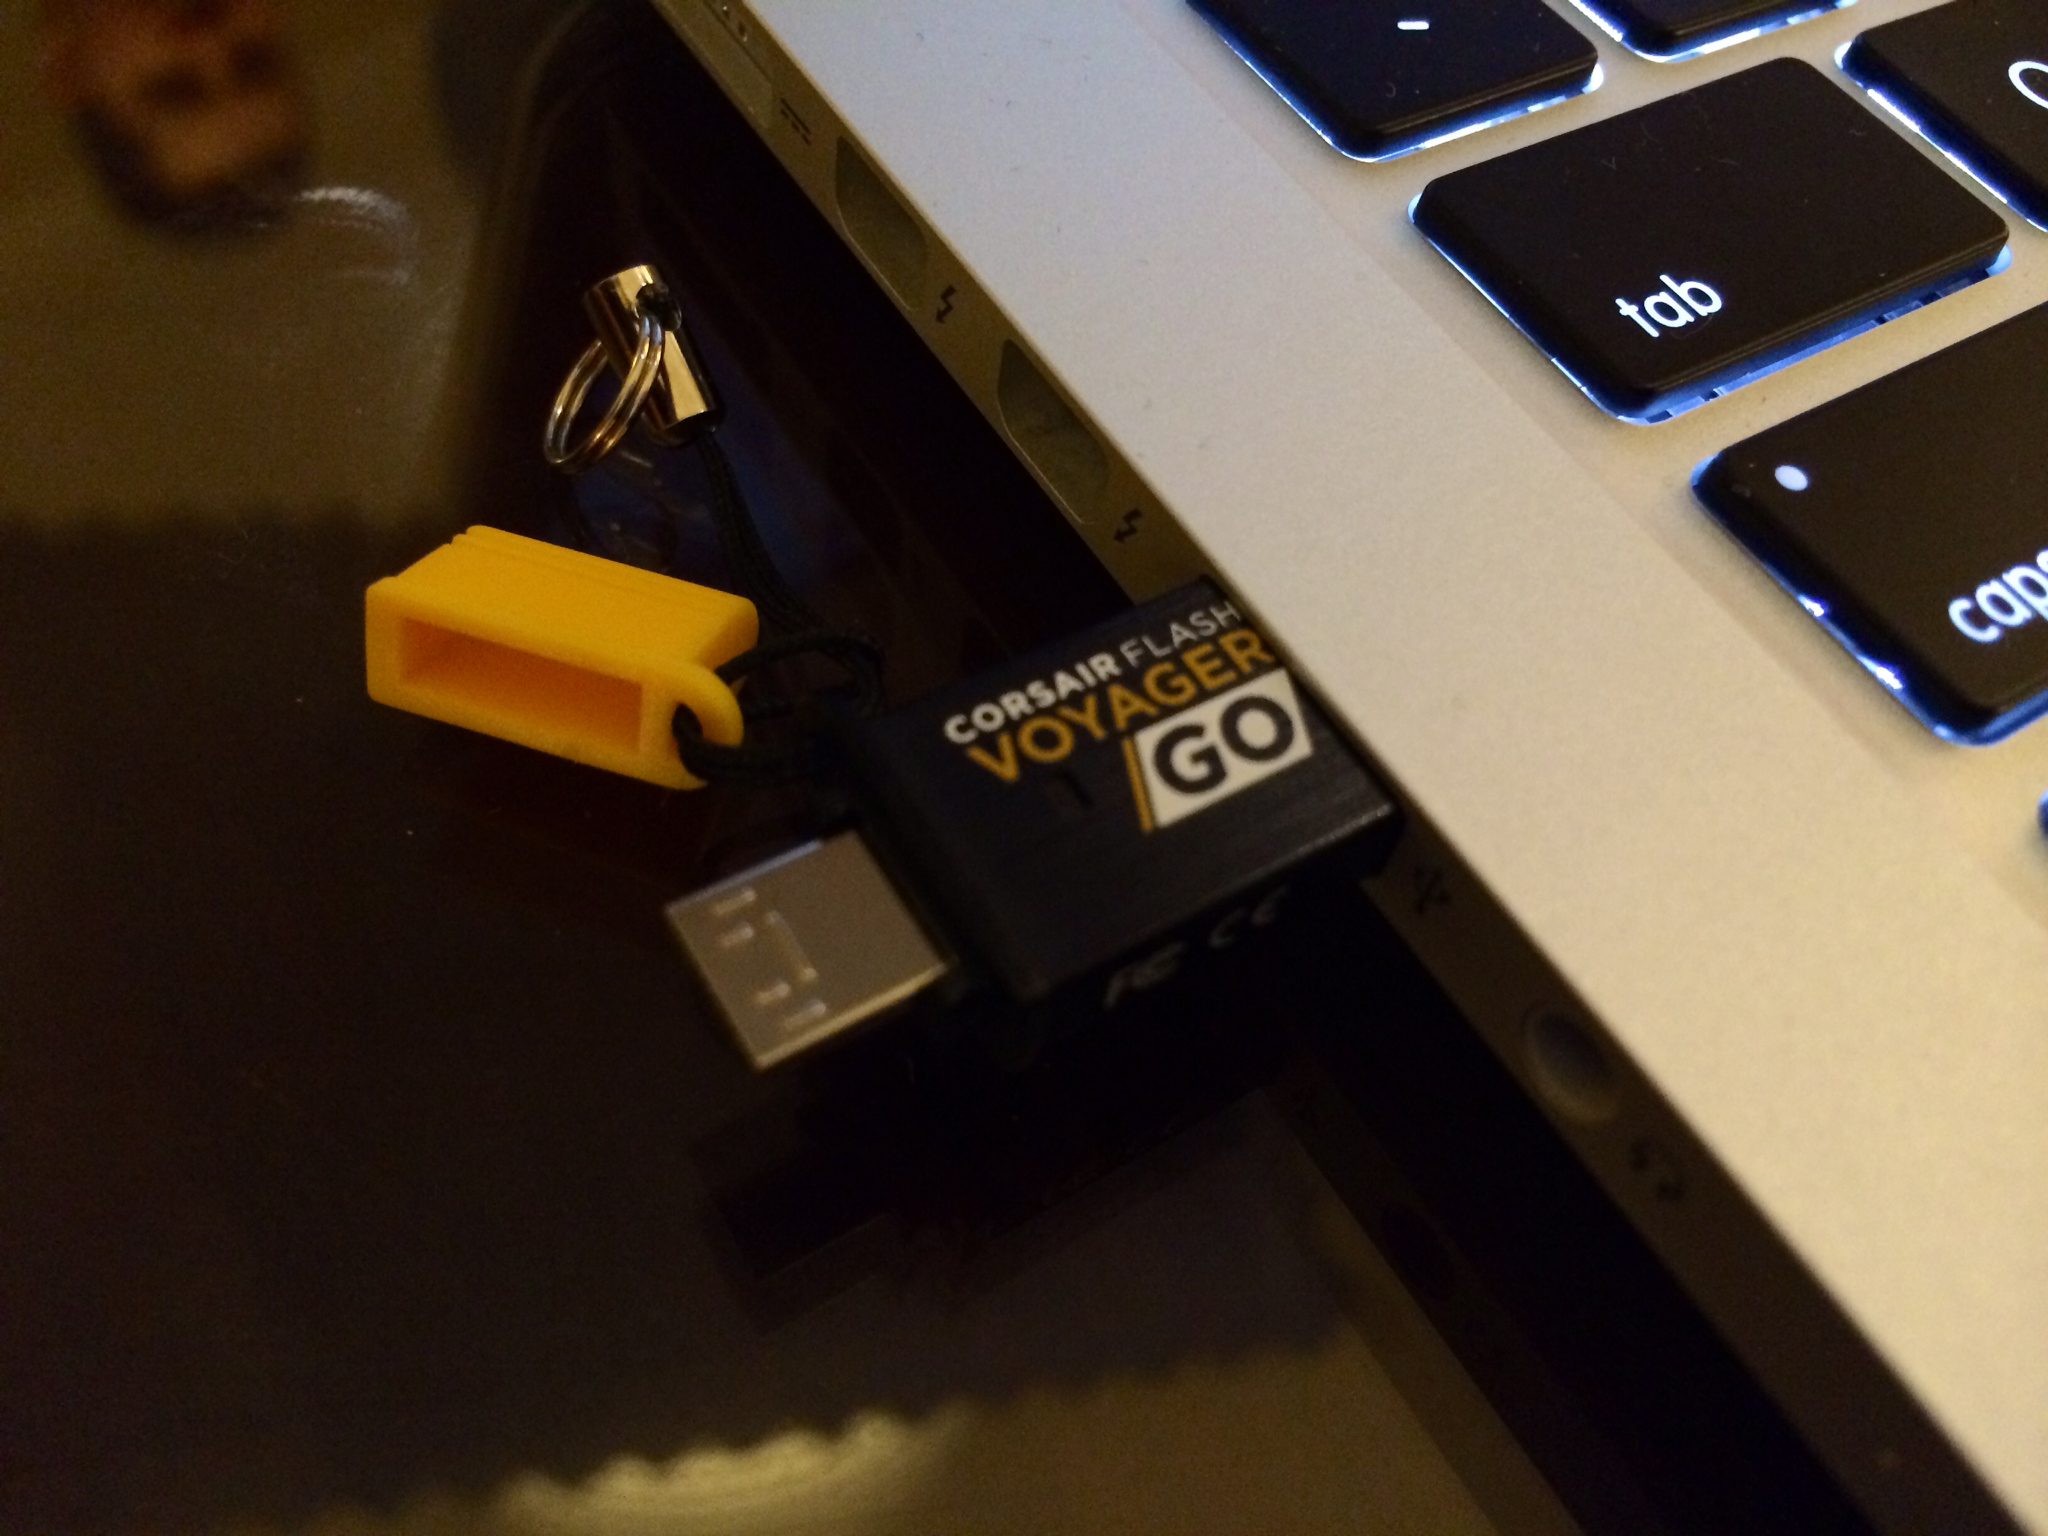 The Corsair Flash Voyager GO USB OTG Flash Drive plugs into your Android smartphone.